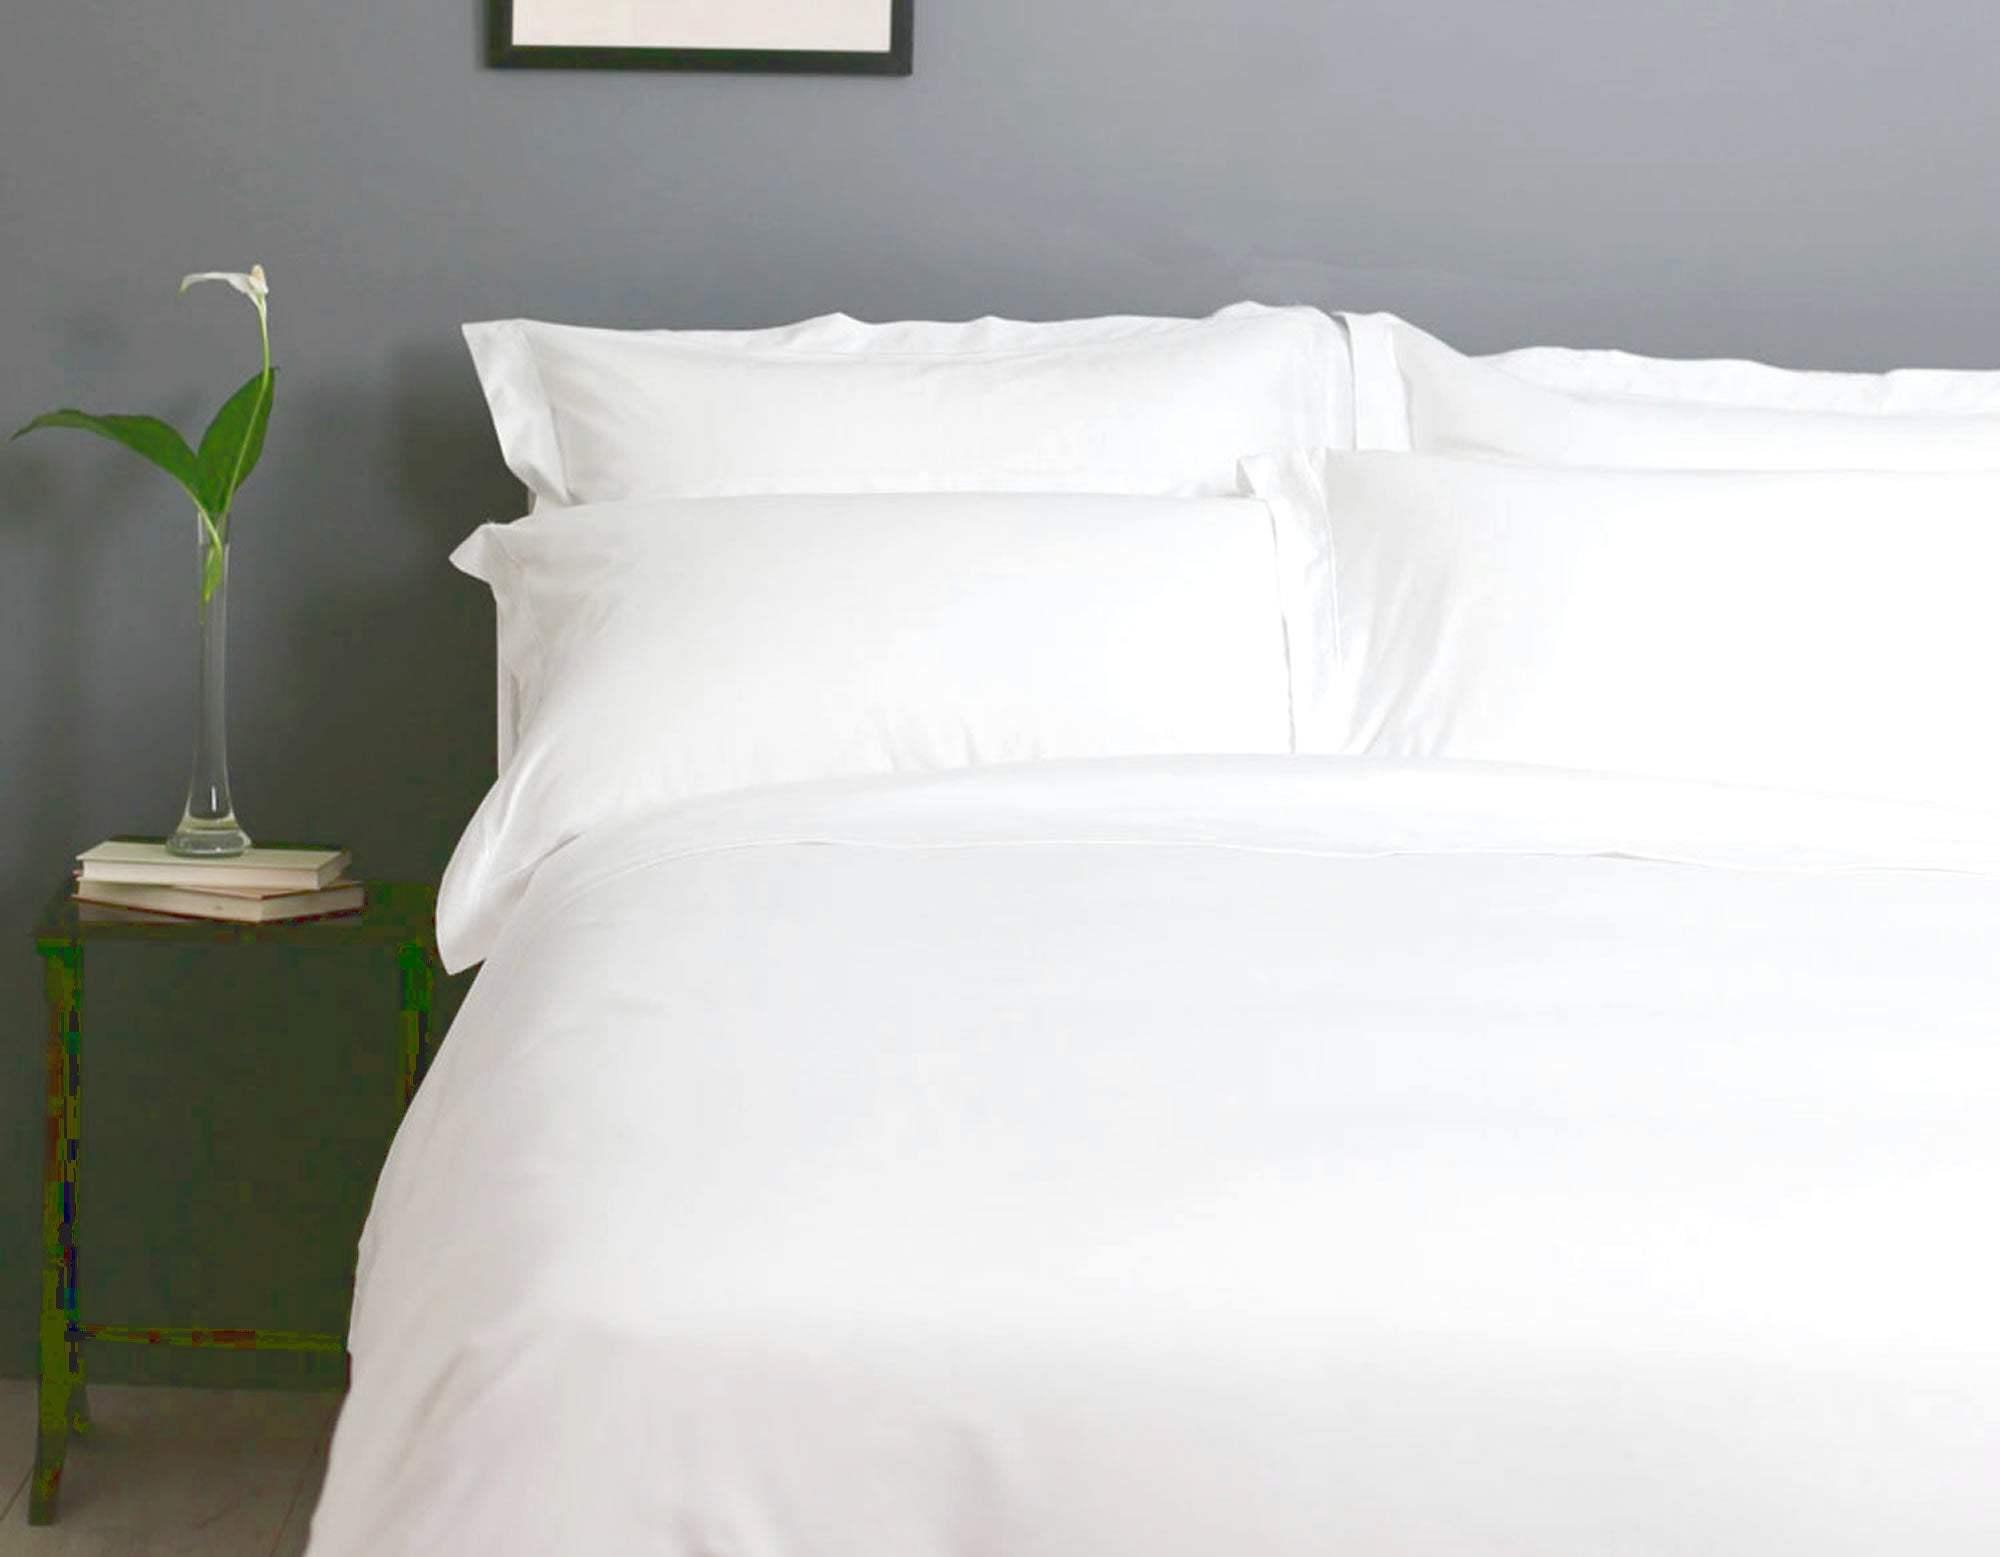 Hungarian goose down pillows on bed | scooms